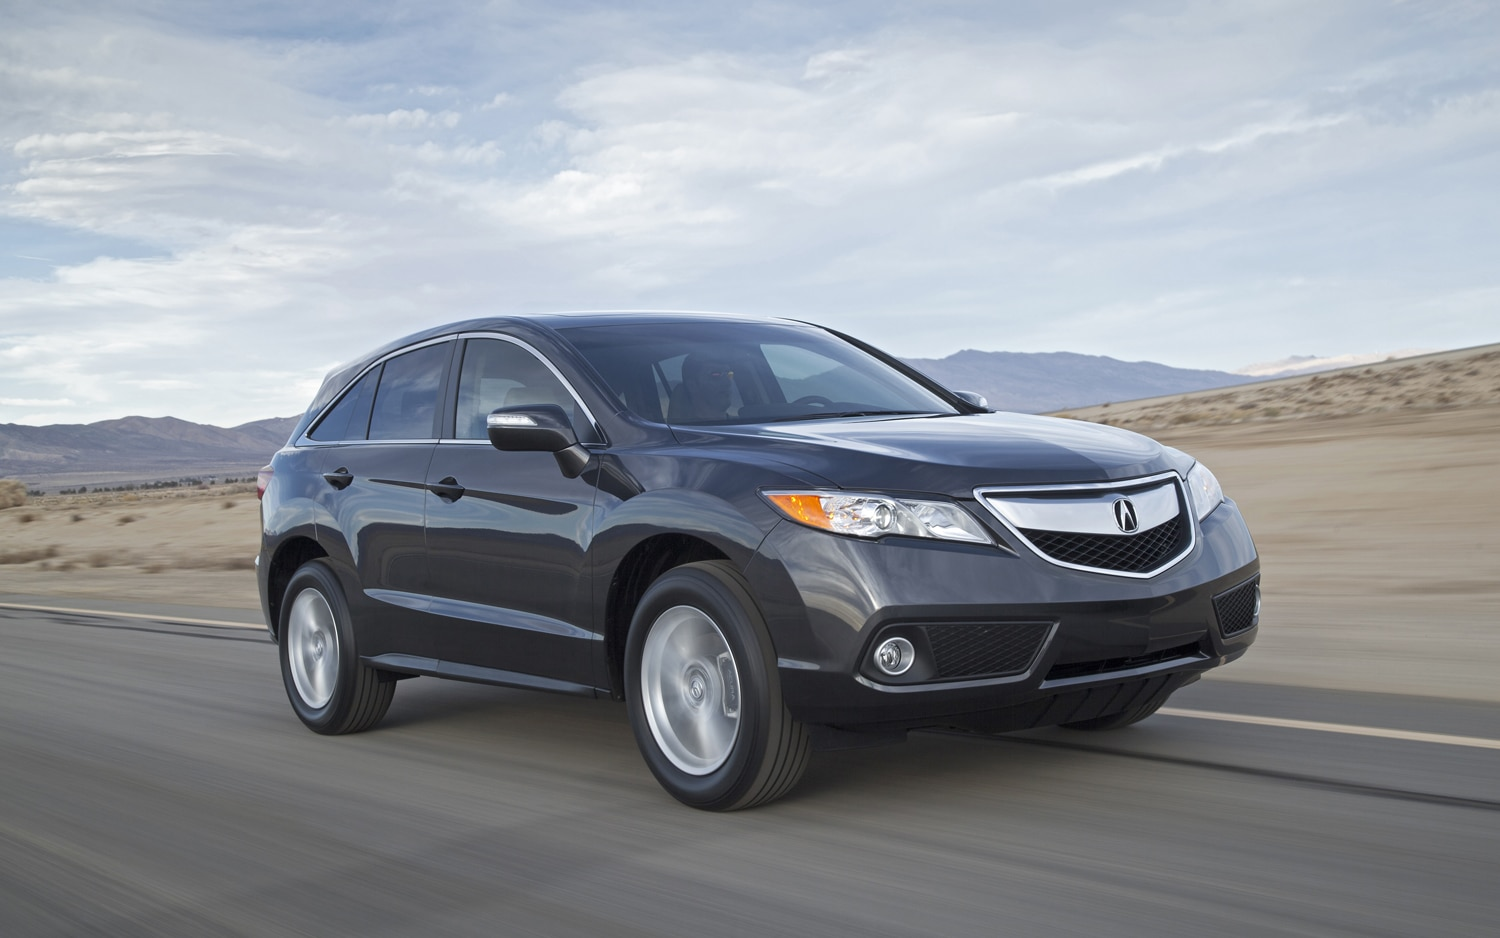 2013 Acura RDX Front Right Side View1